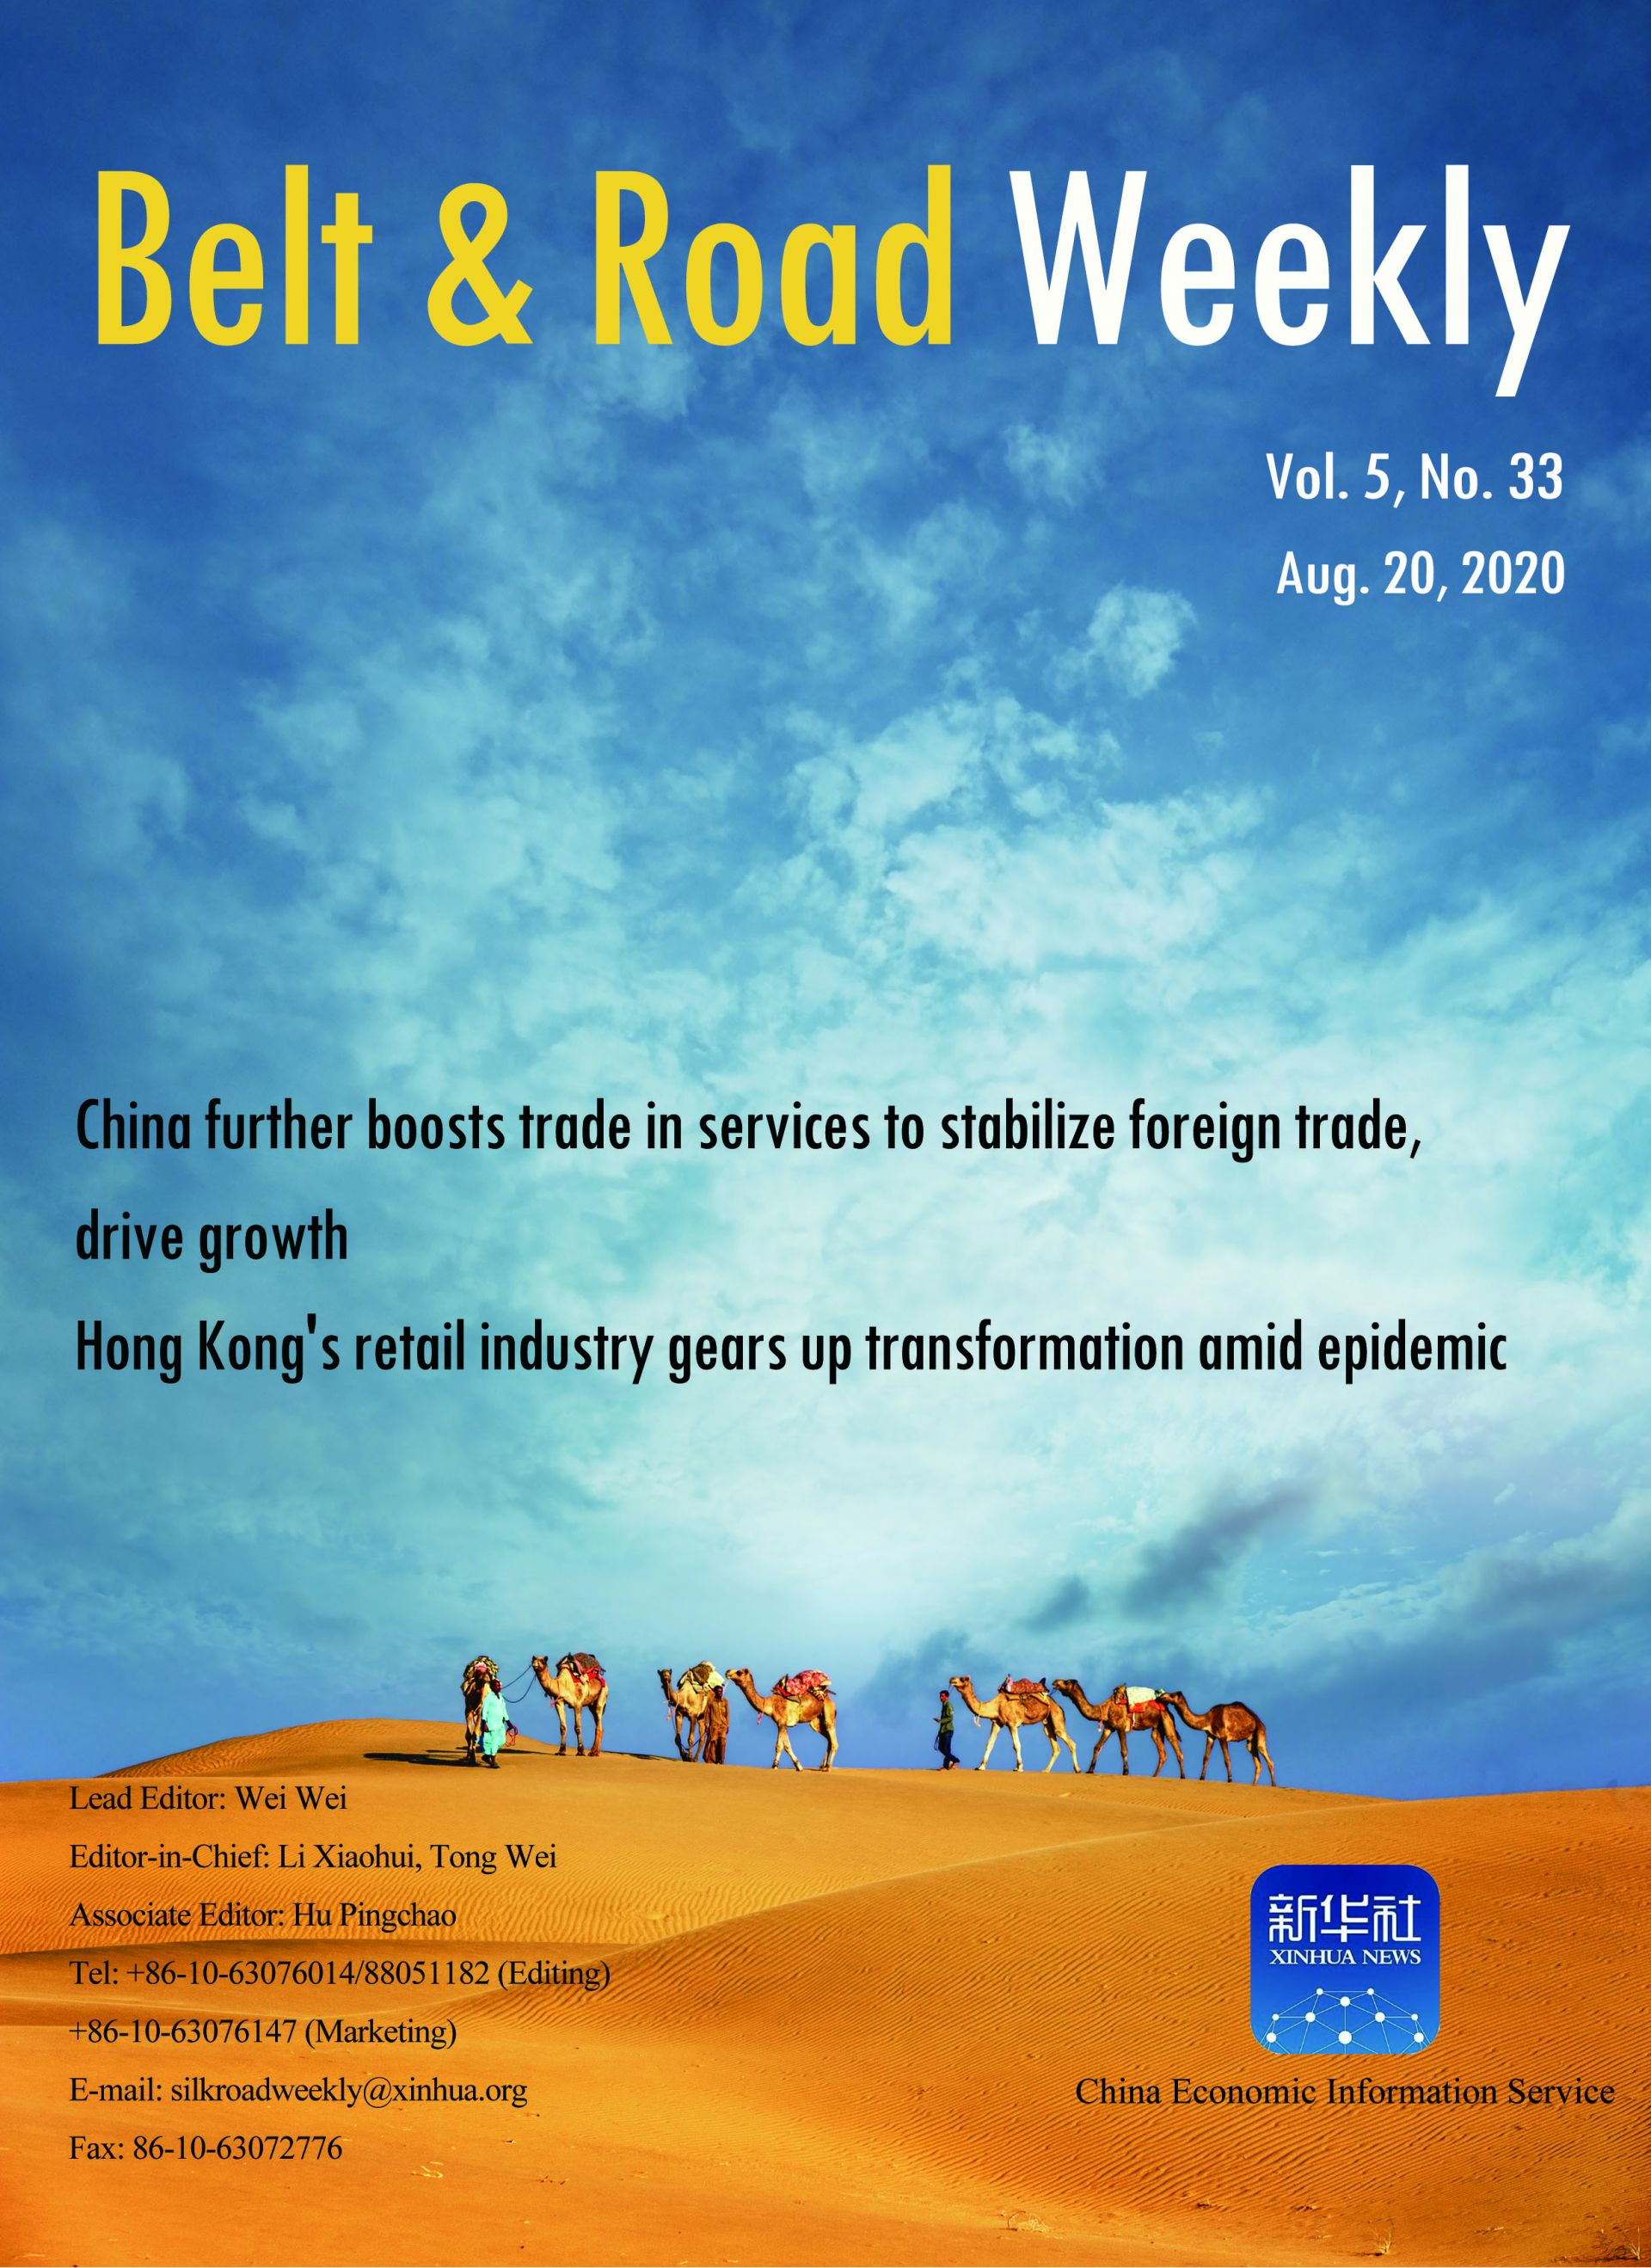 Belt and Road Weekly Vol. 5 No. 33